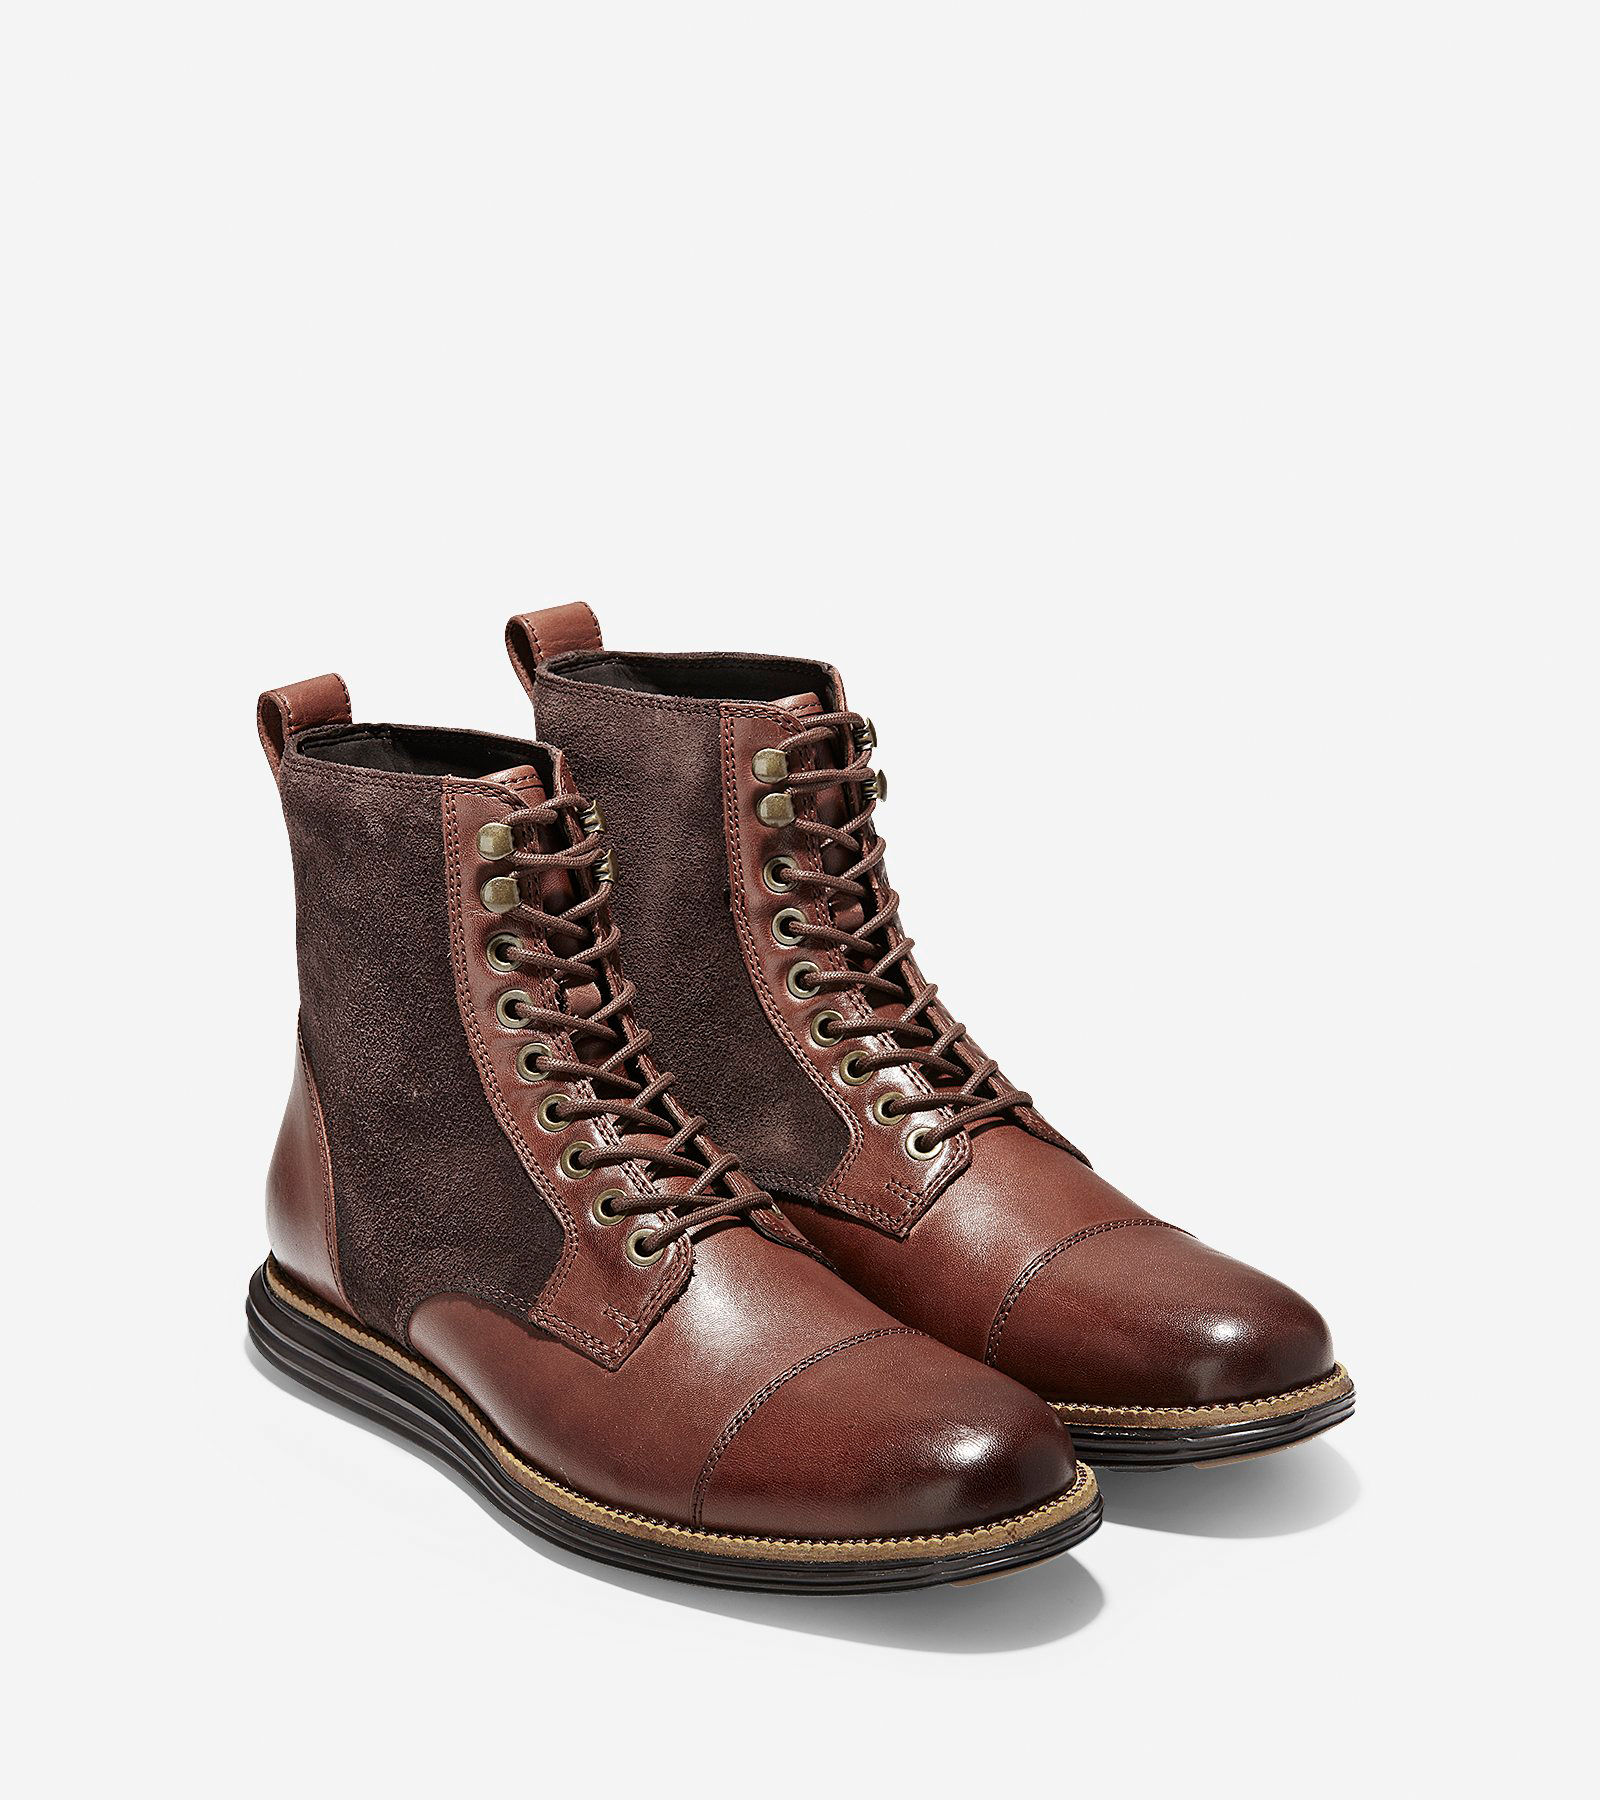 cole haan originalgrand captoe boot.jpg